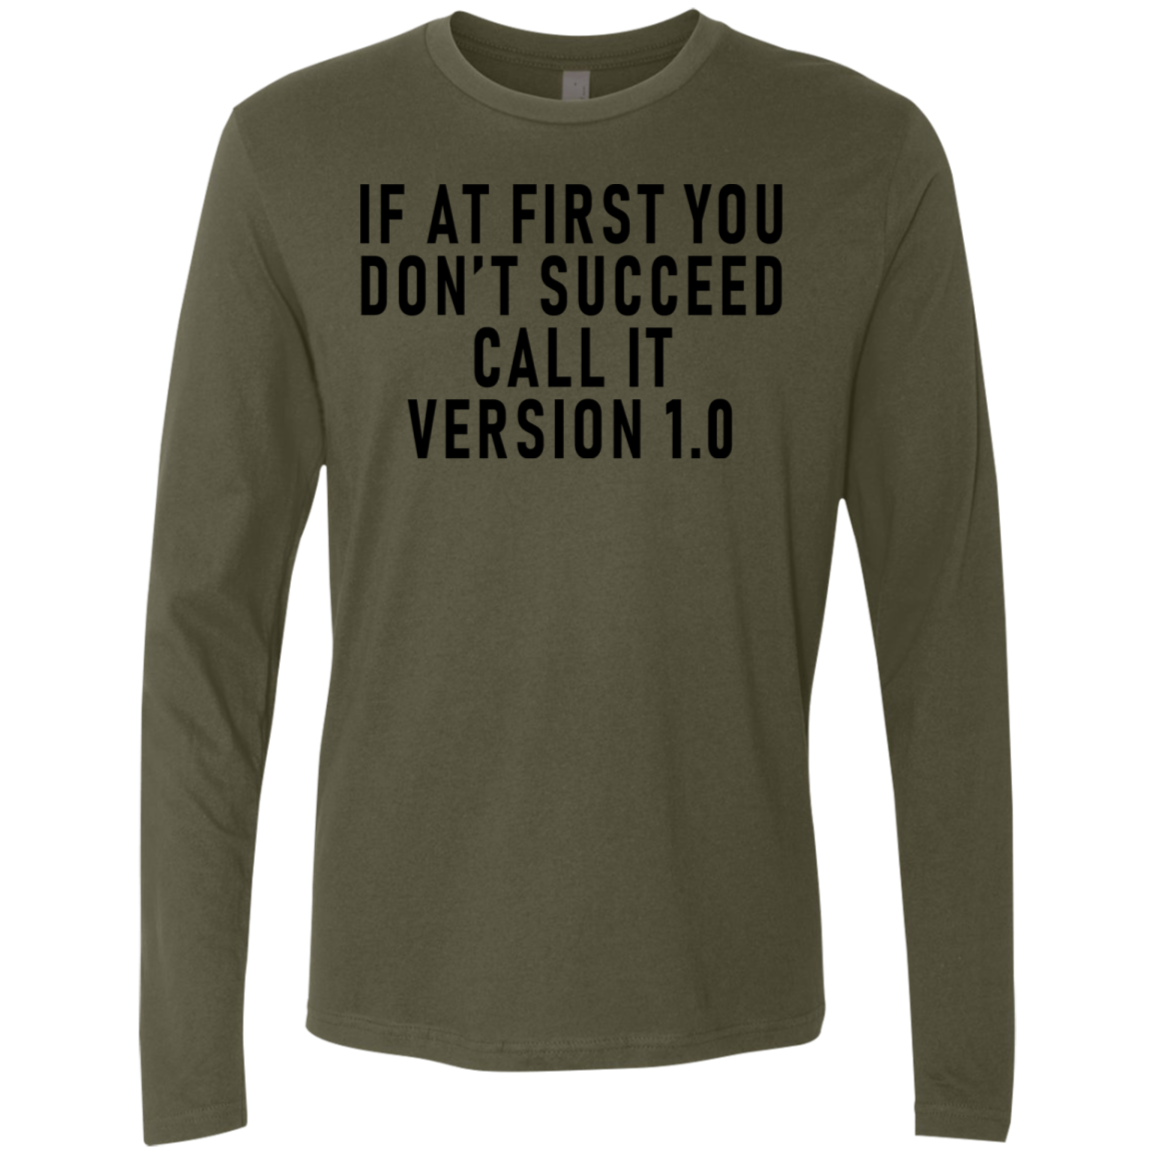 If At First You Don't Succed Call It Version 1.0 Men's Long Sleeve Tee